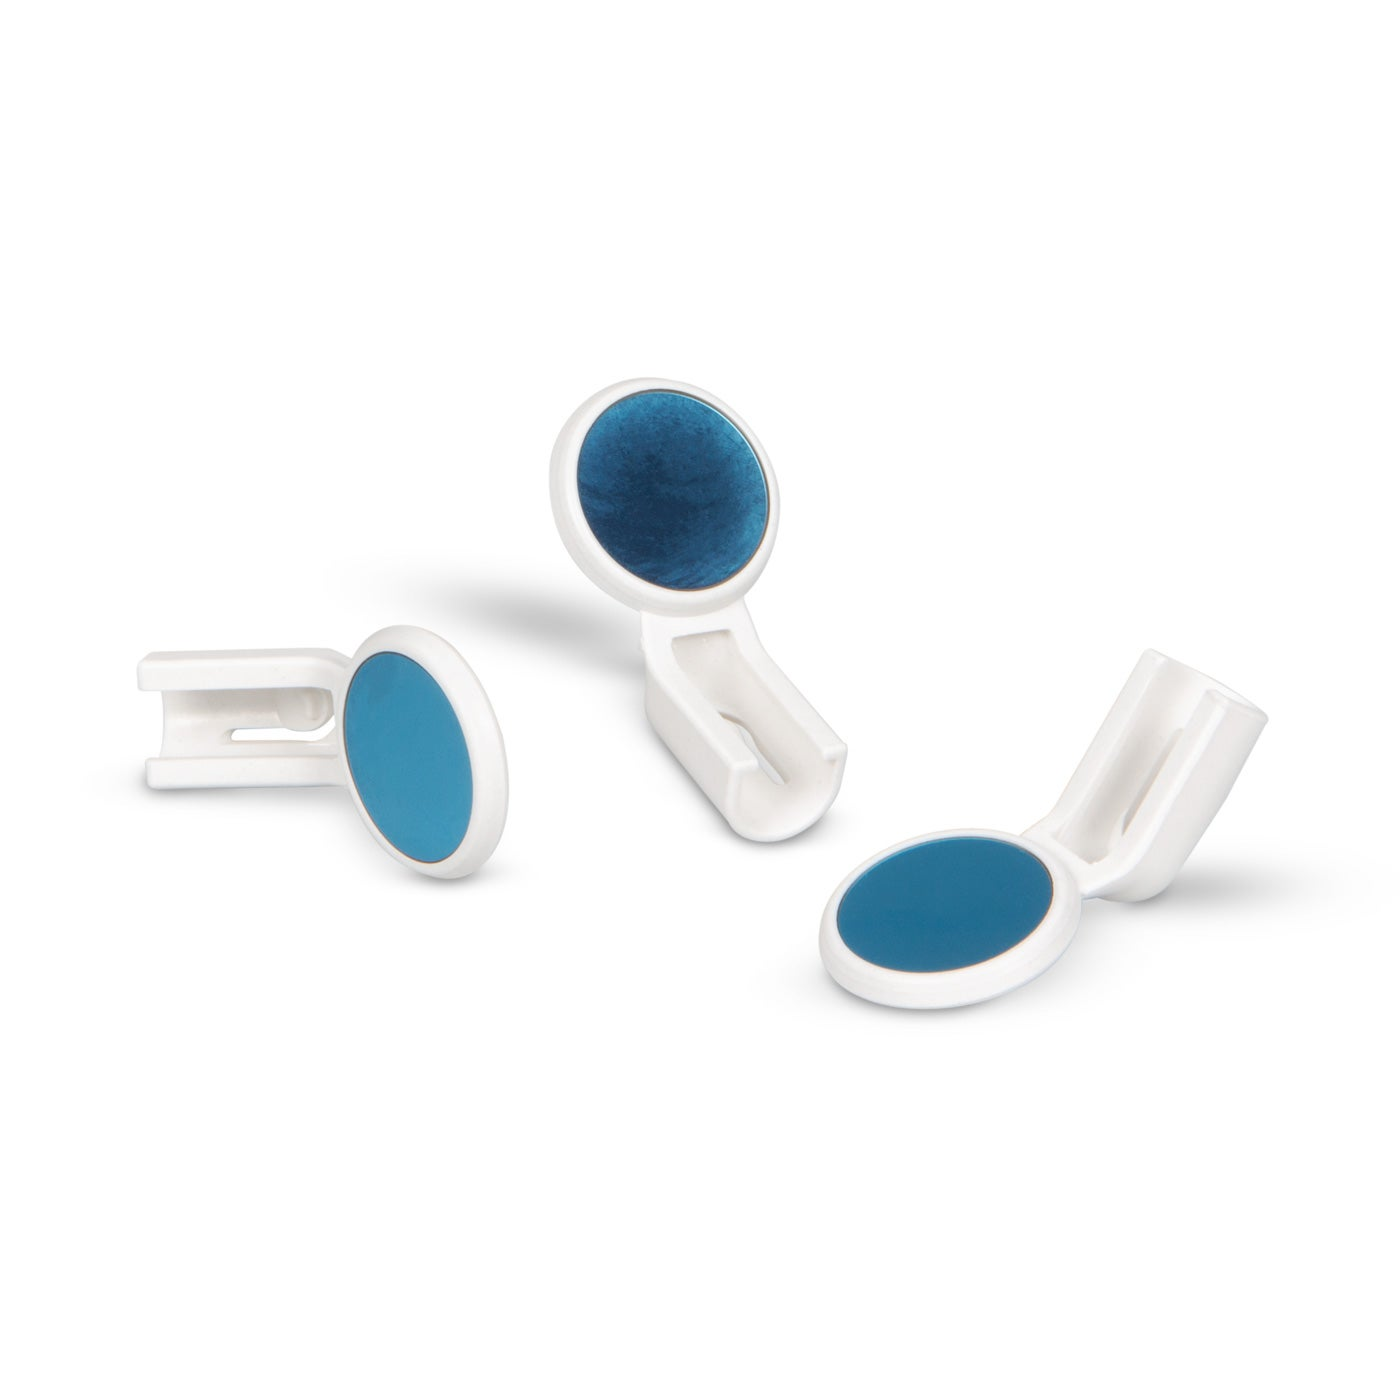 Dental Lesion Detection Mirrors - ViziLite Angled Exam Mirrors